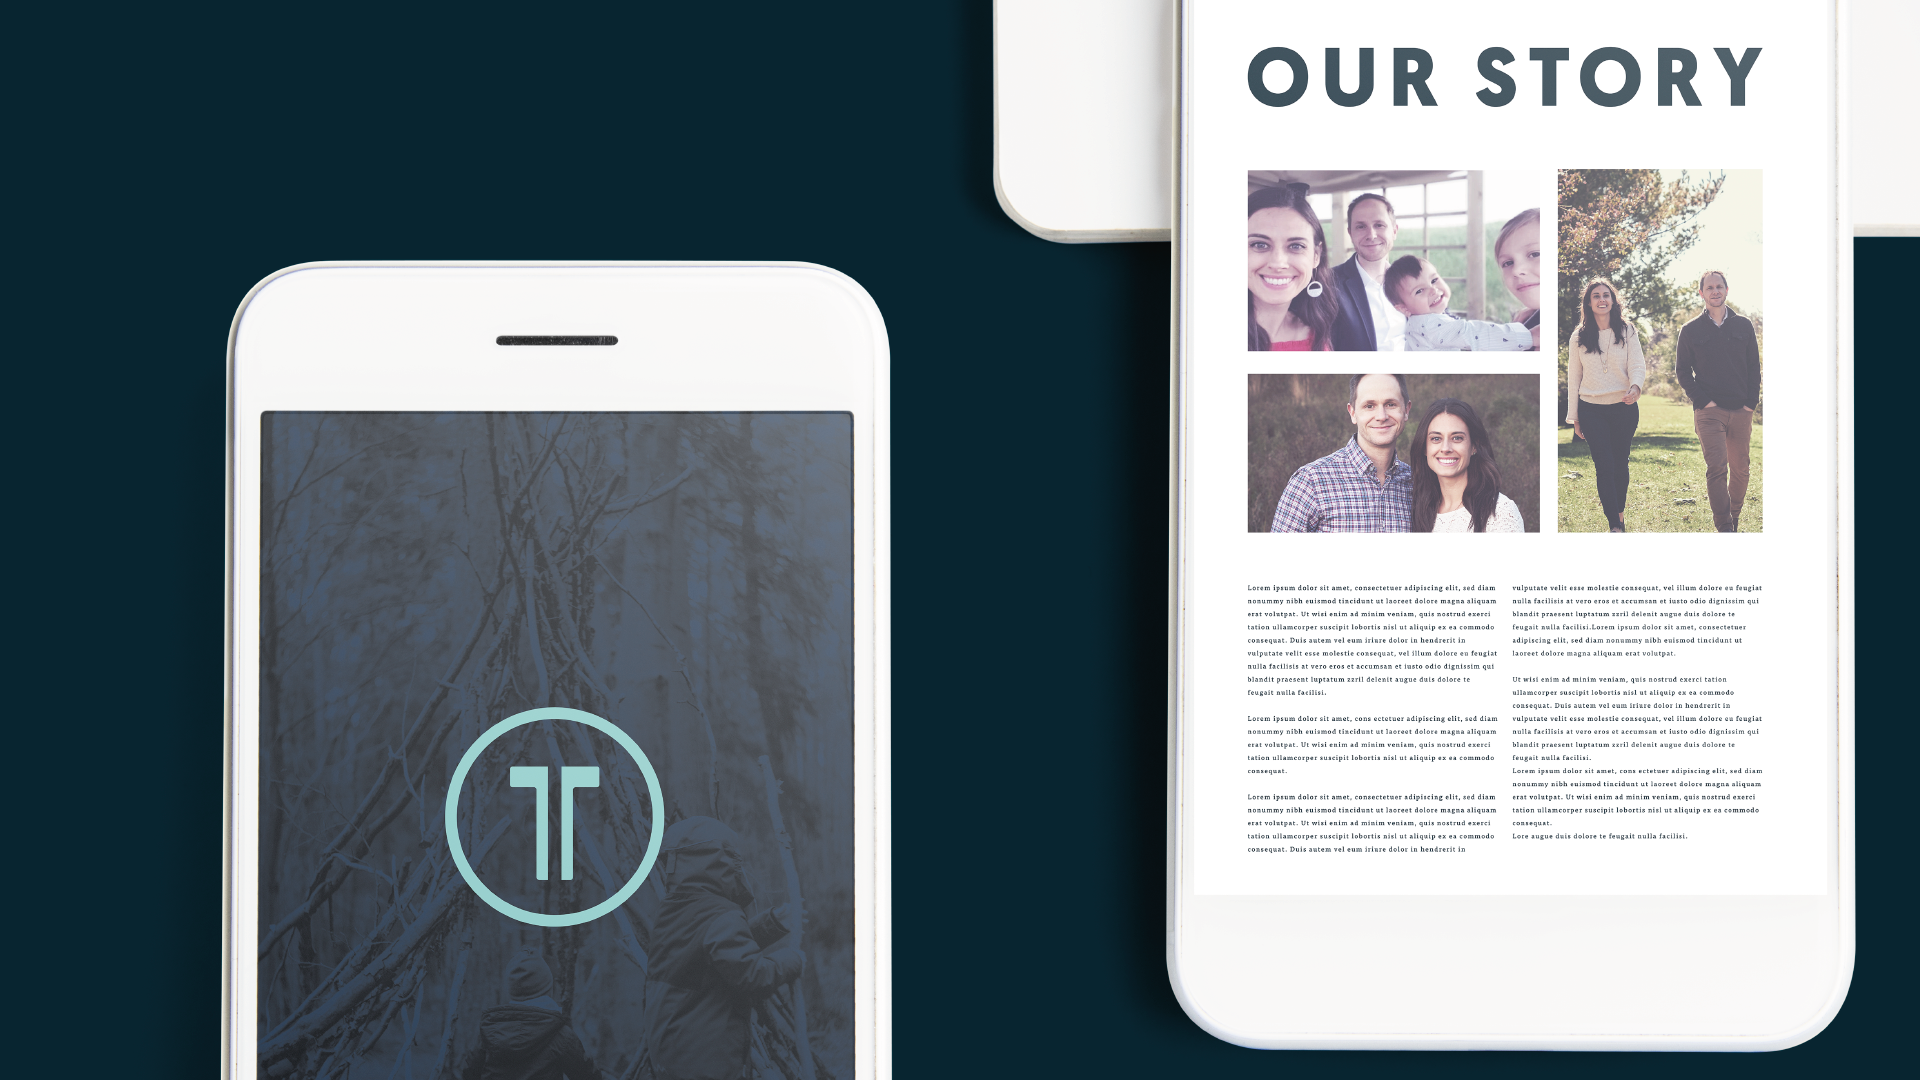 Mobile mockup of the Tandem site. Images show the logo on one phone with two kids in the woods. Blue overlay. The other phone shows pictures of the Tandem owners, Craig and Carrie with their kids.